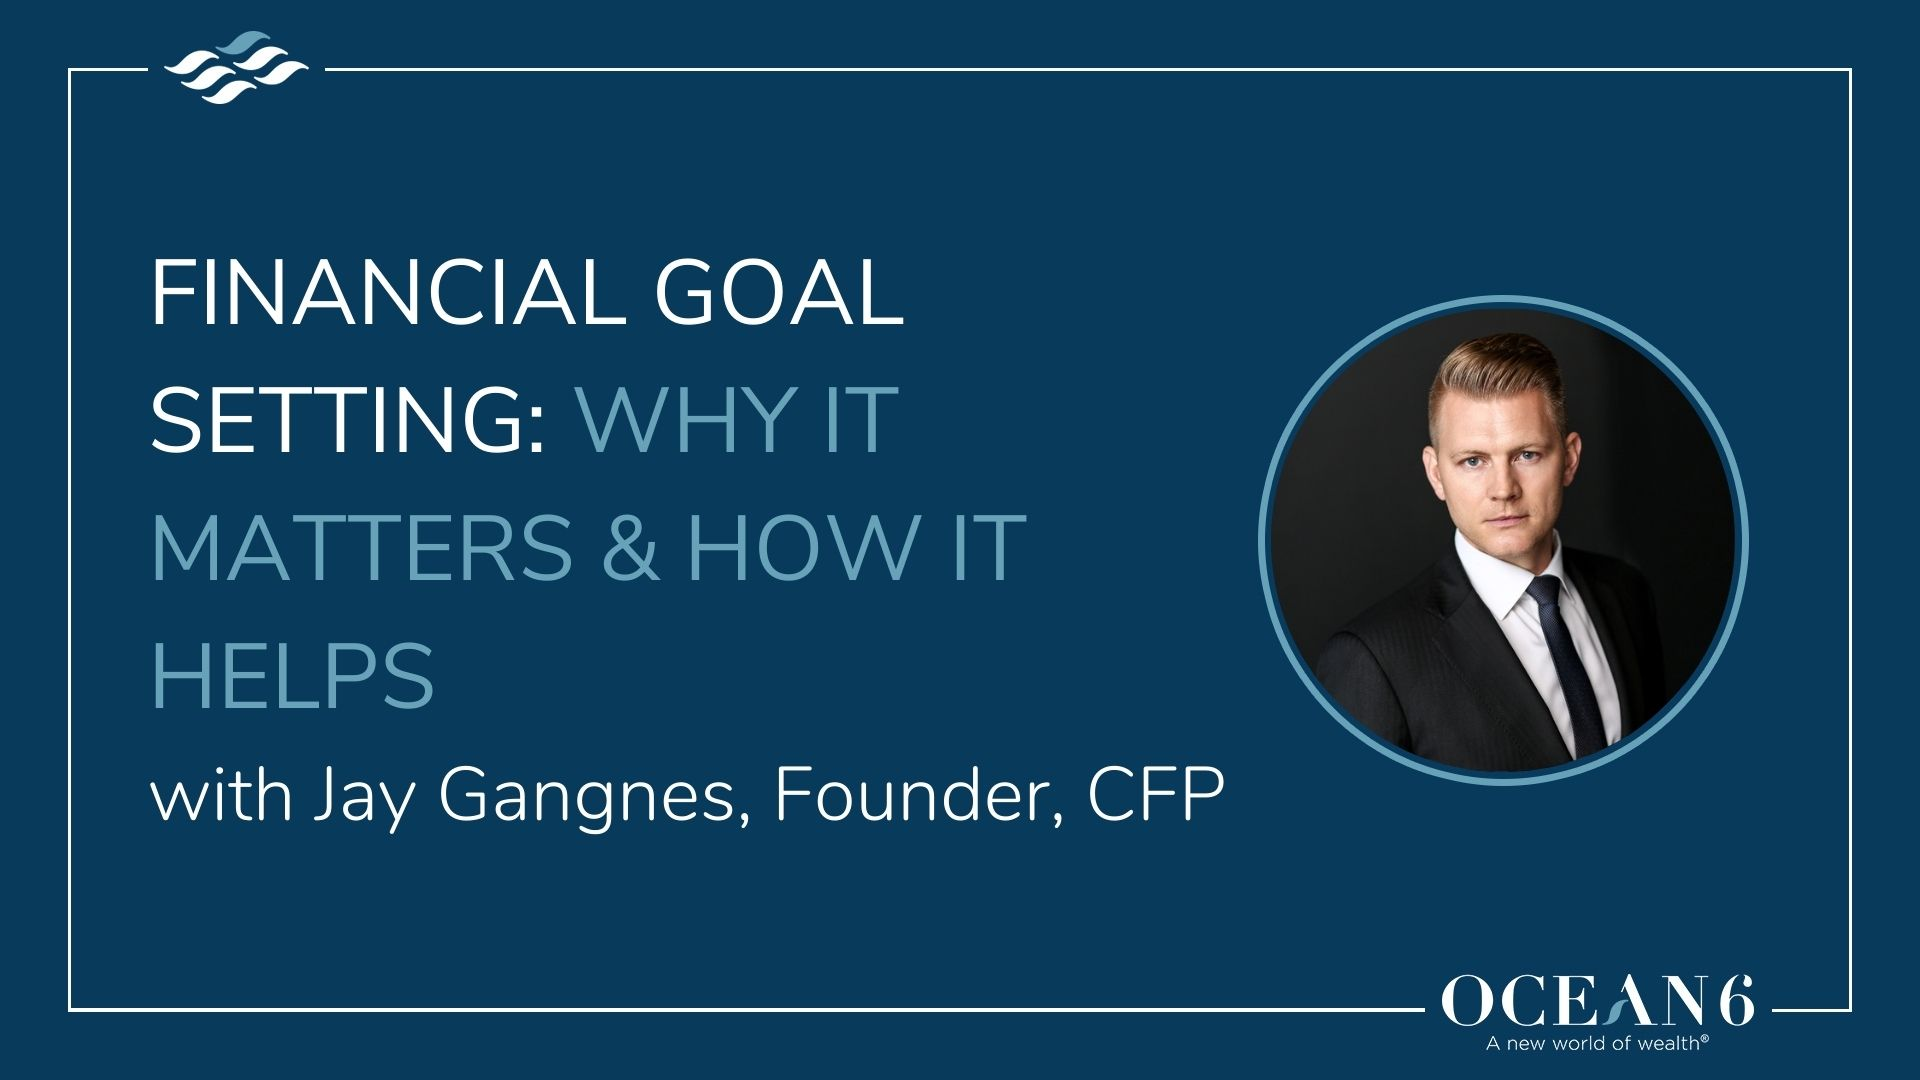 Financial Goal Setting: Why It Matters & How It Helps